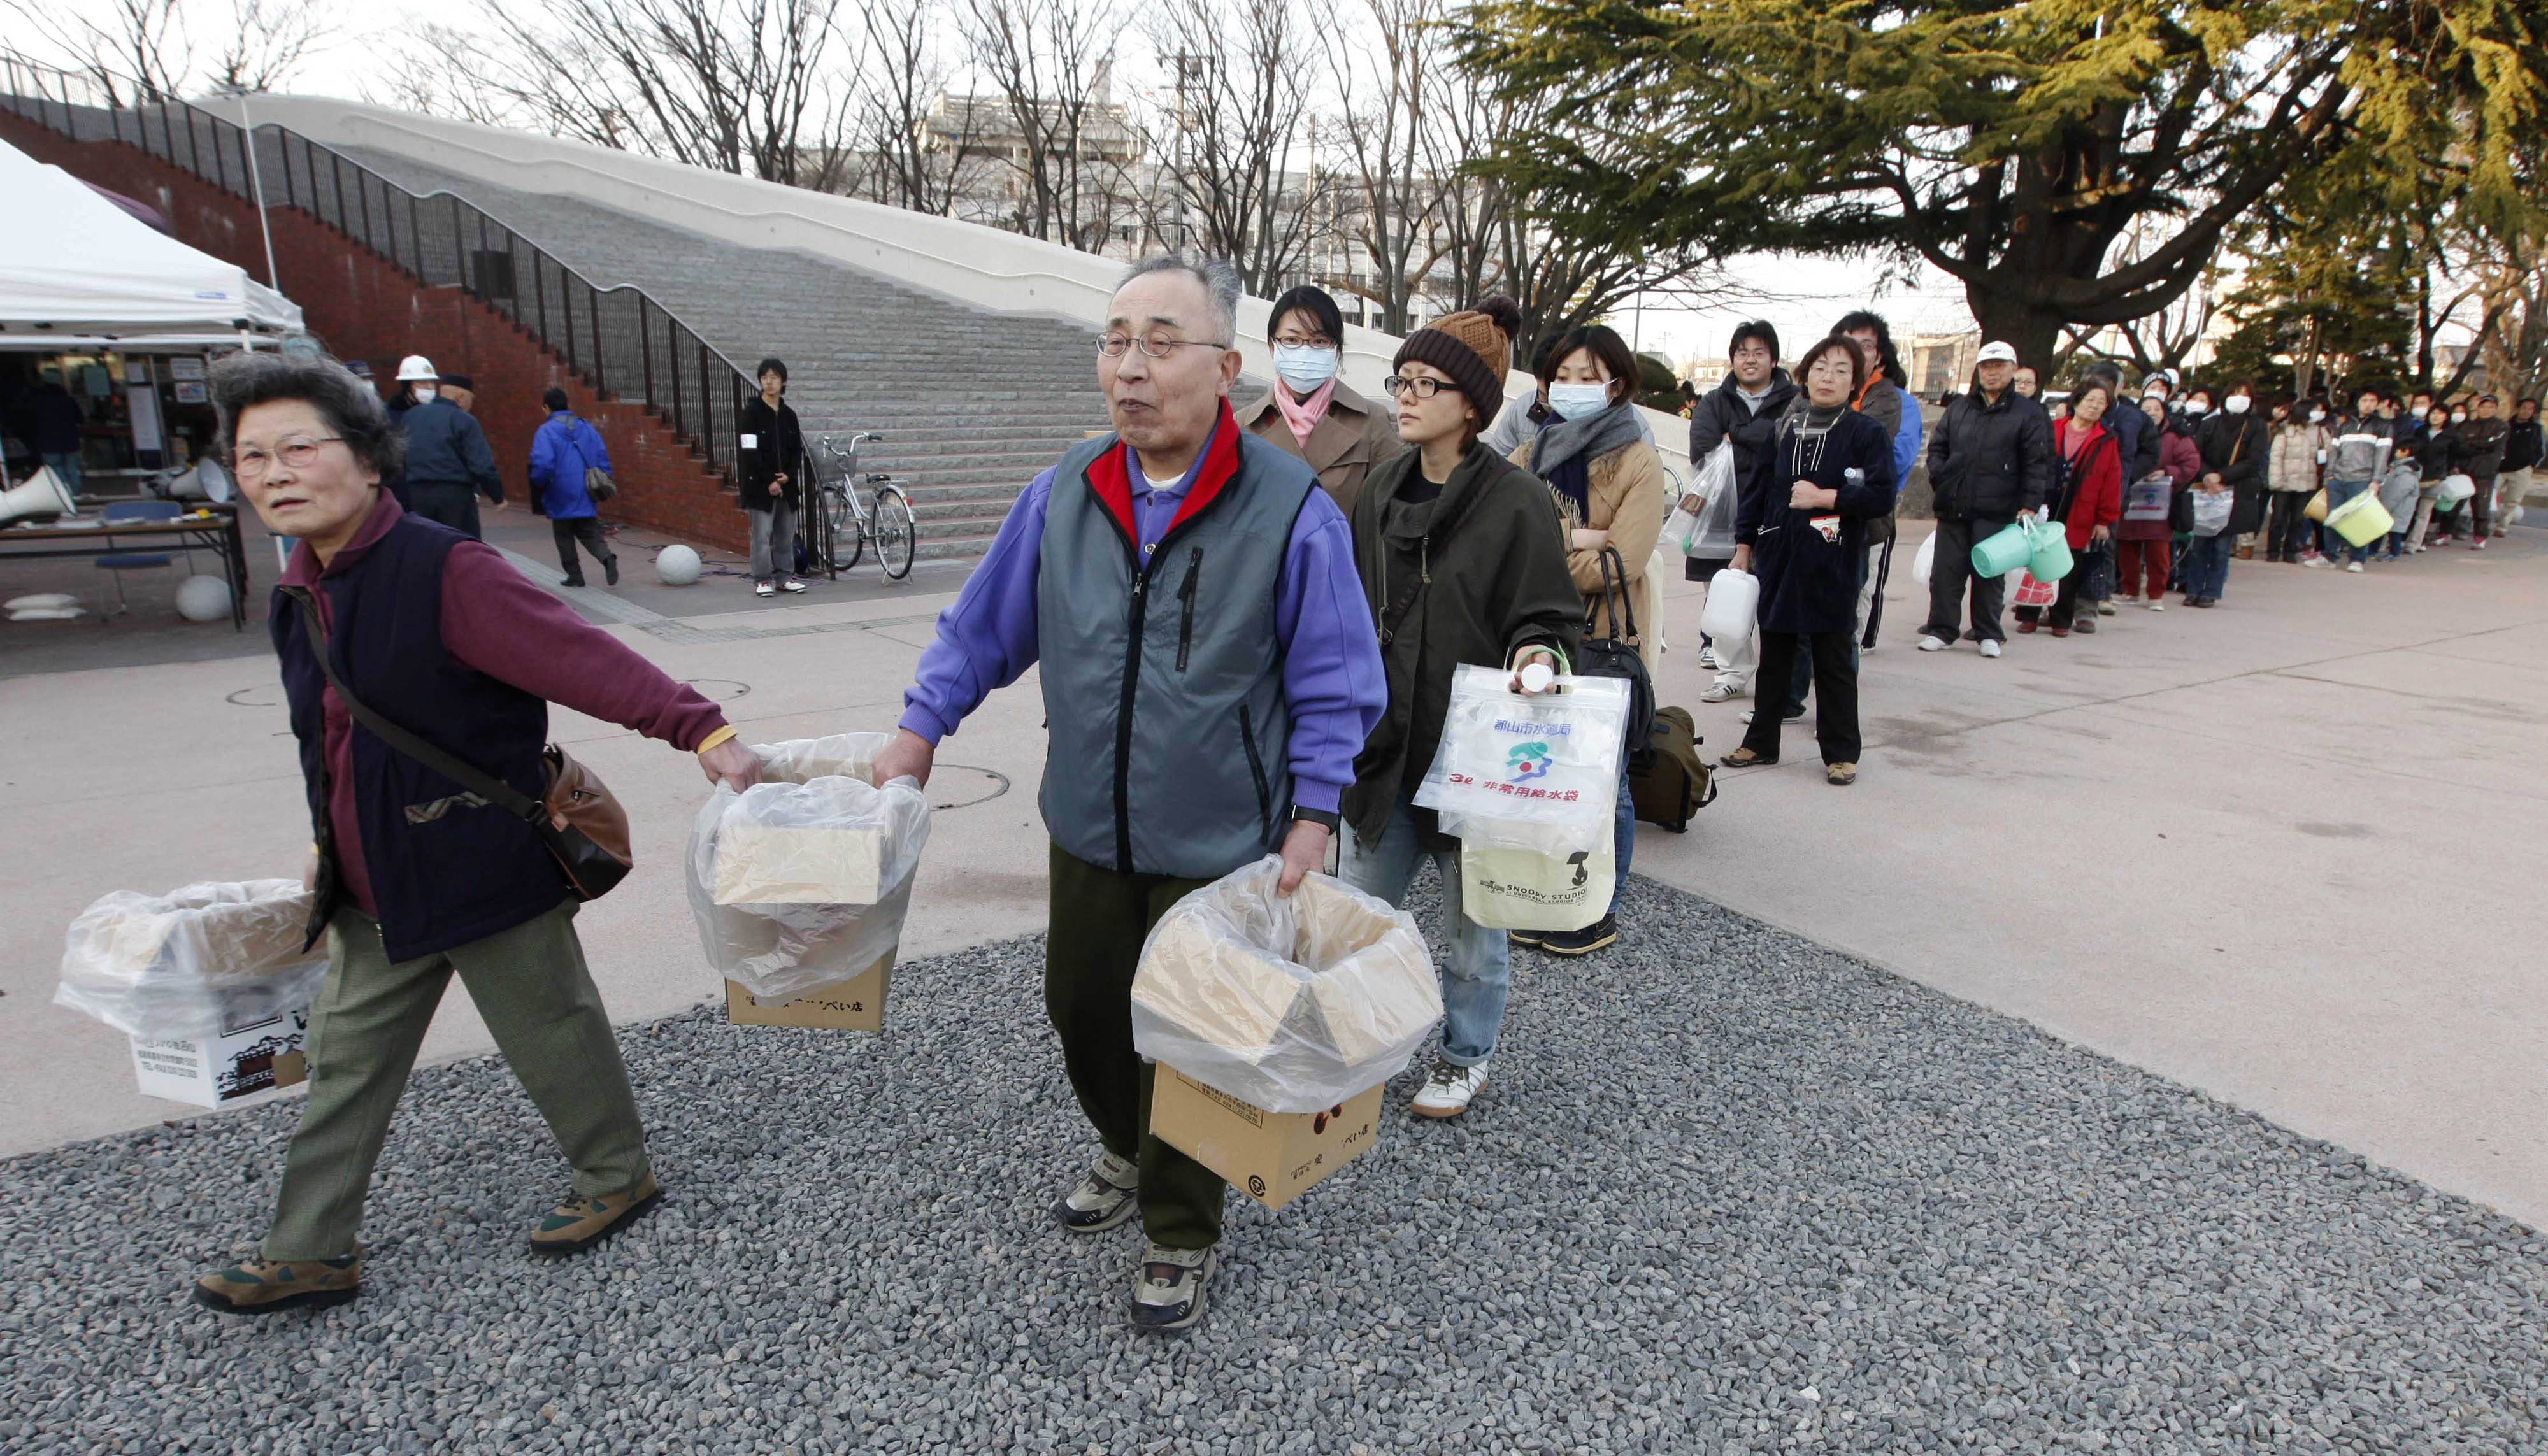 People line up with various containers to get fresh water in Koriyama, Fukushima Prefecture, Japan, Sunday, March 13, 2011, two days after a giant quake and tsunami struck the country's northeastern coast.